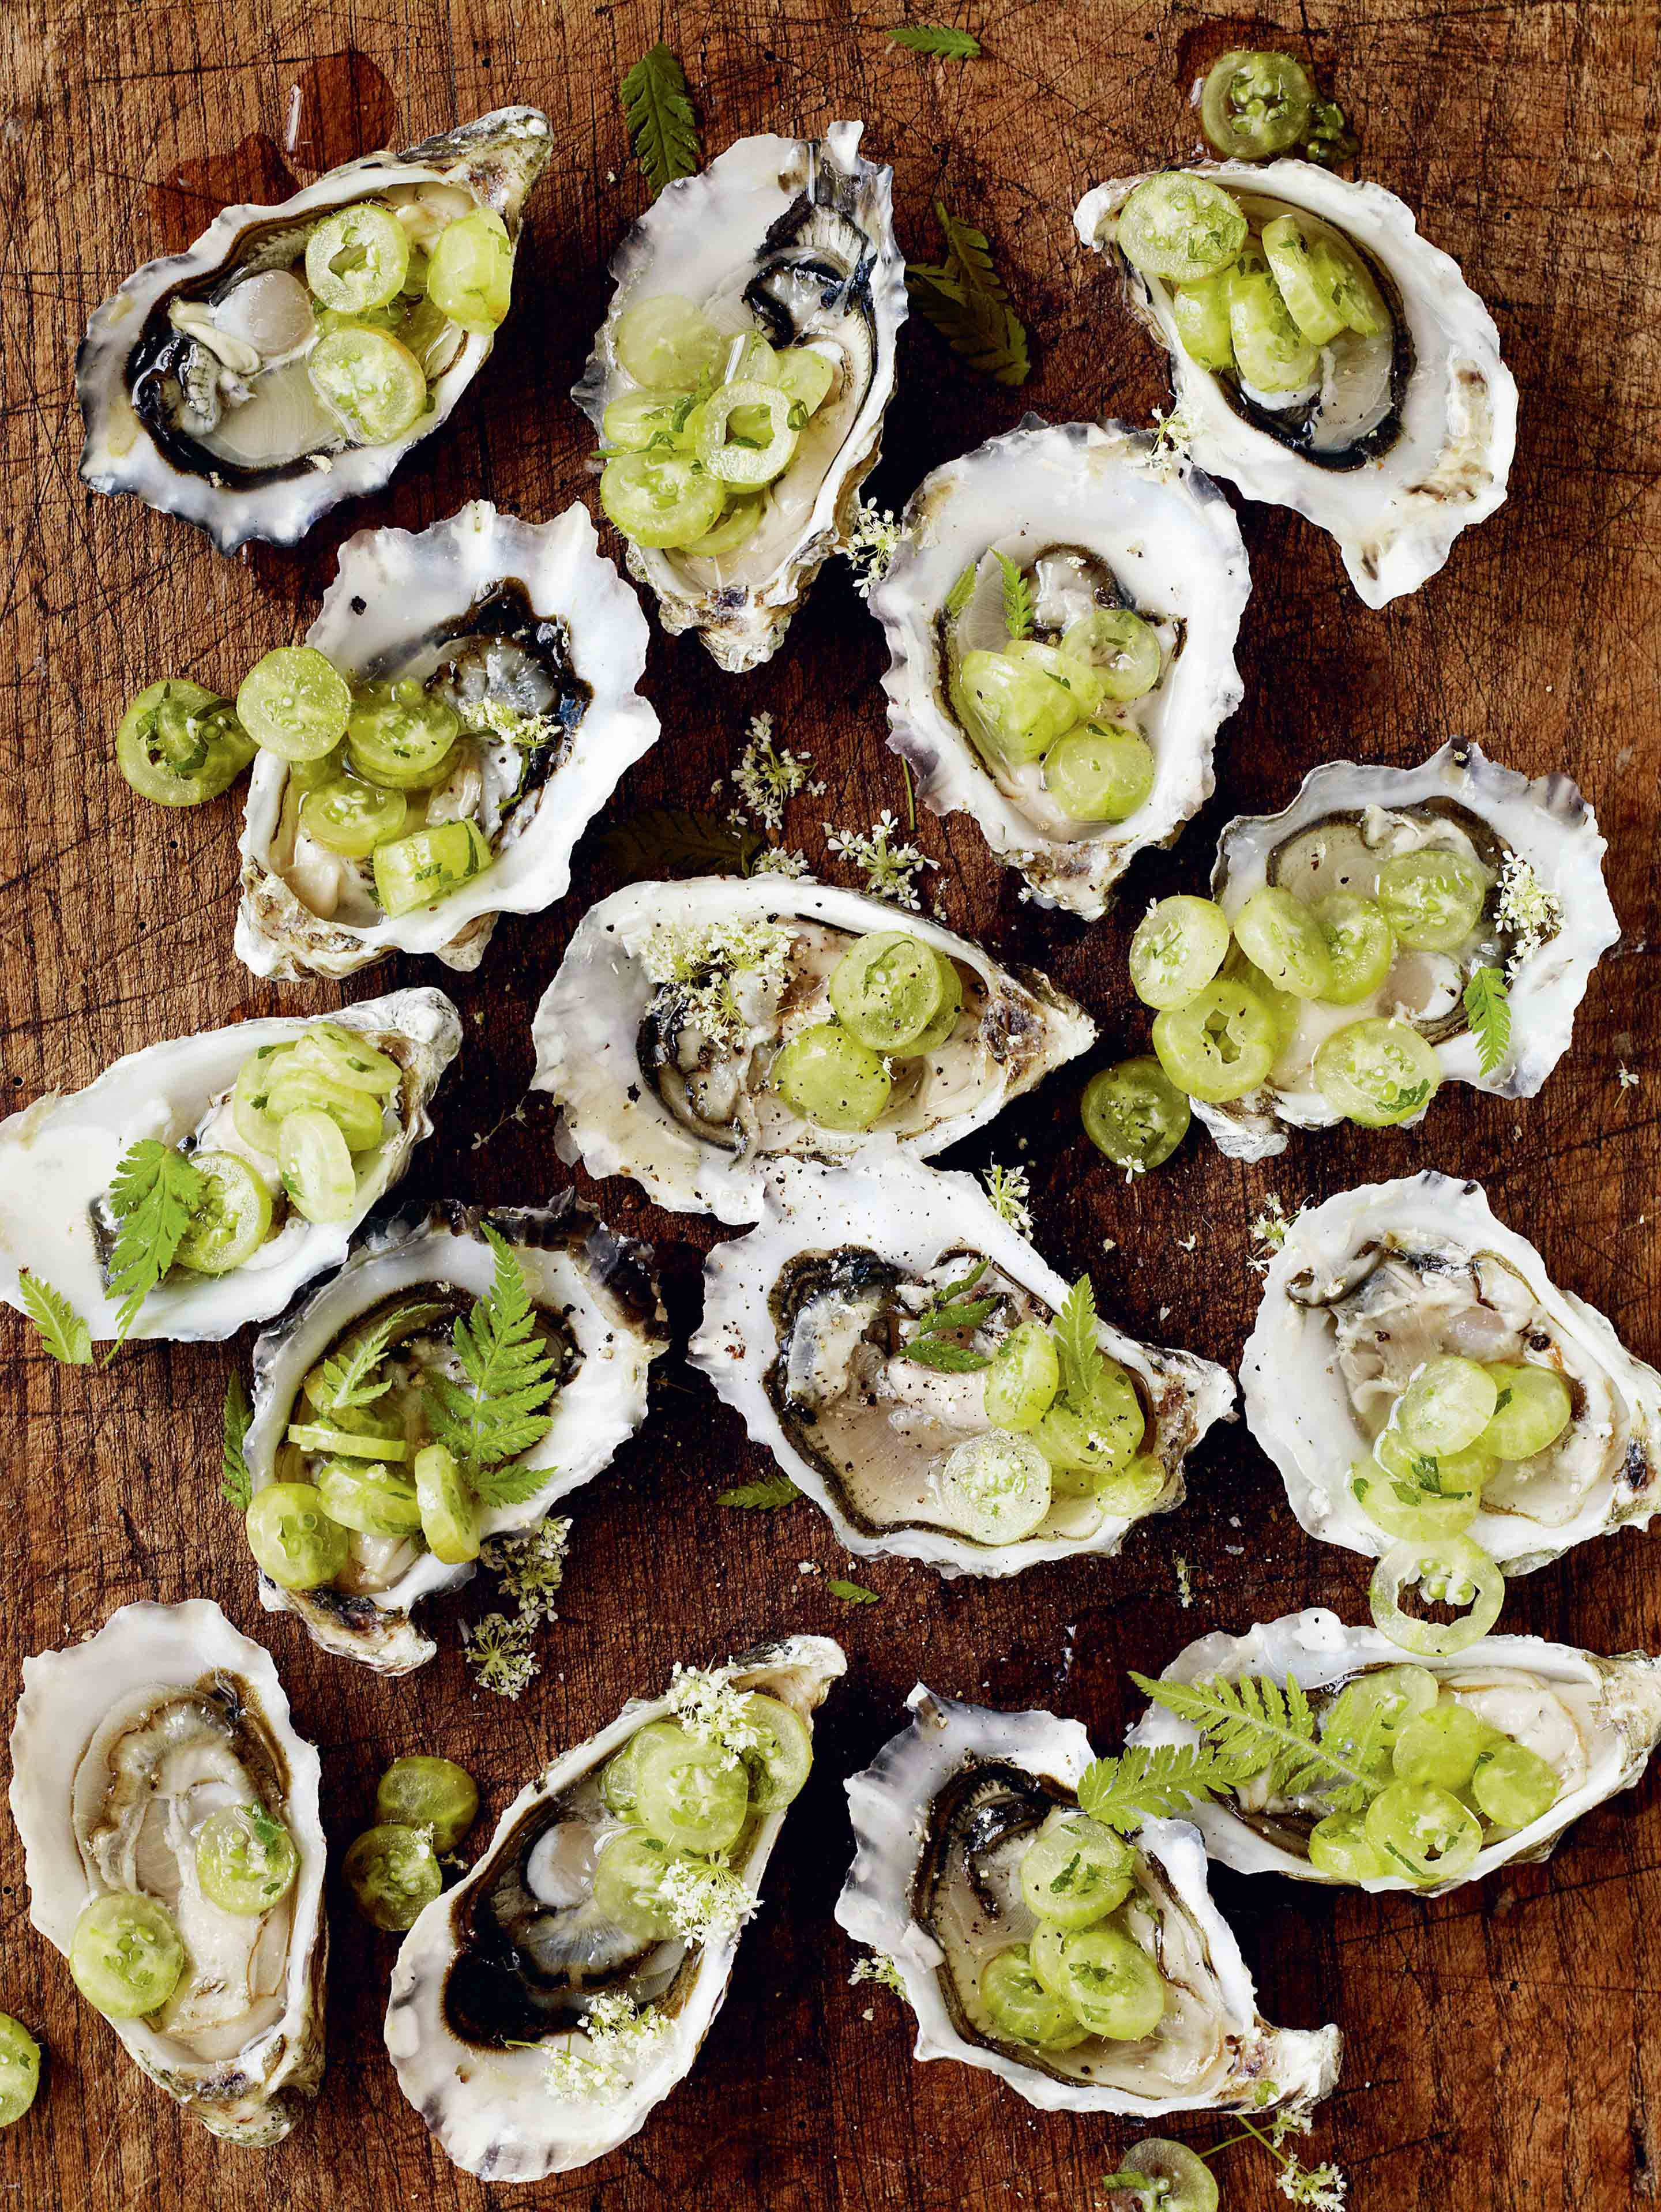 Oysters with sweet cicely & gooseberries